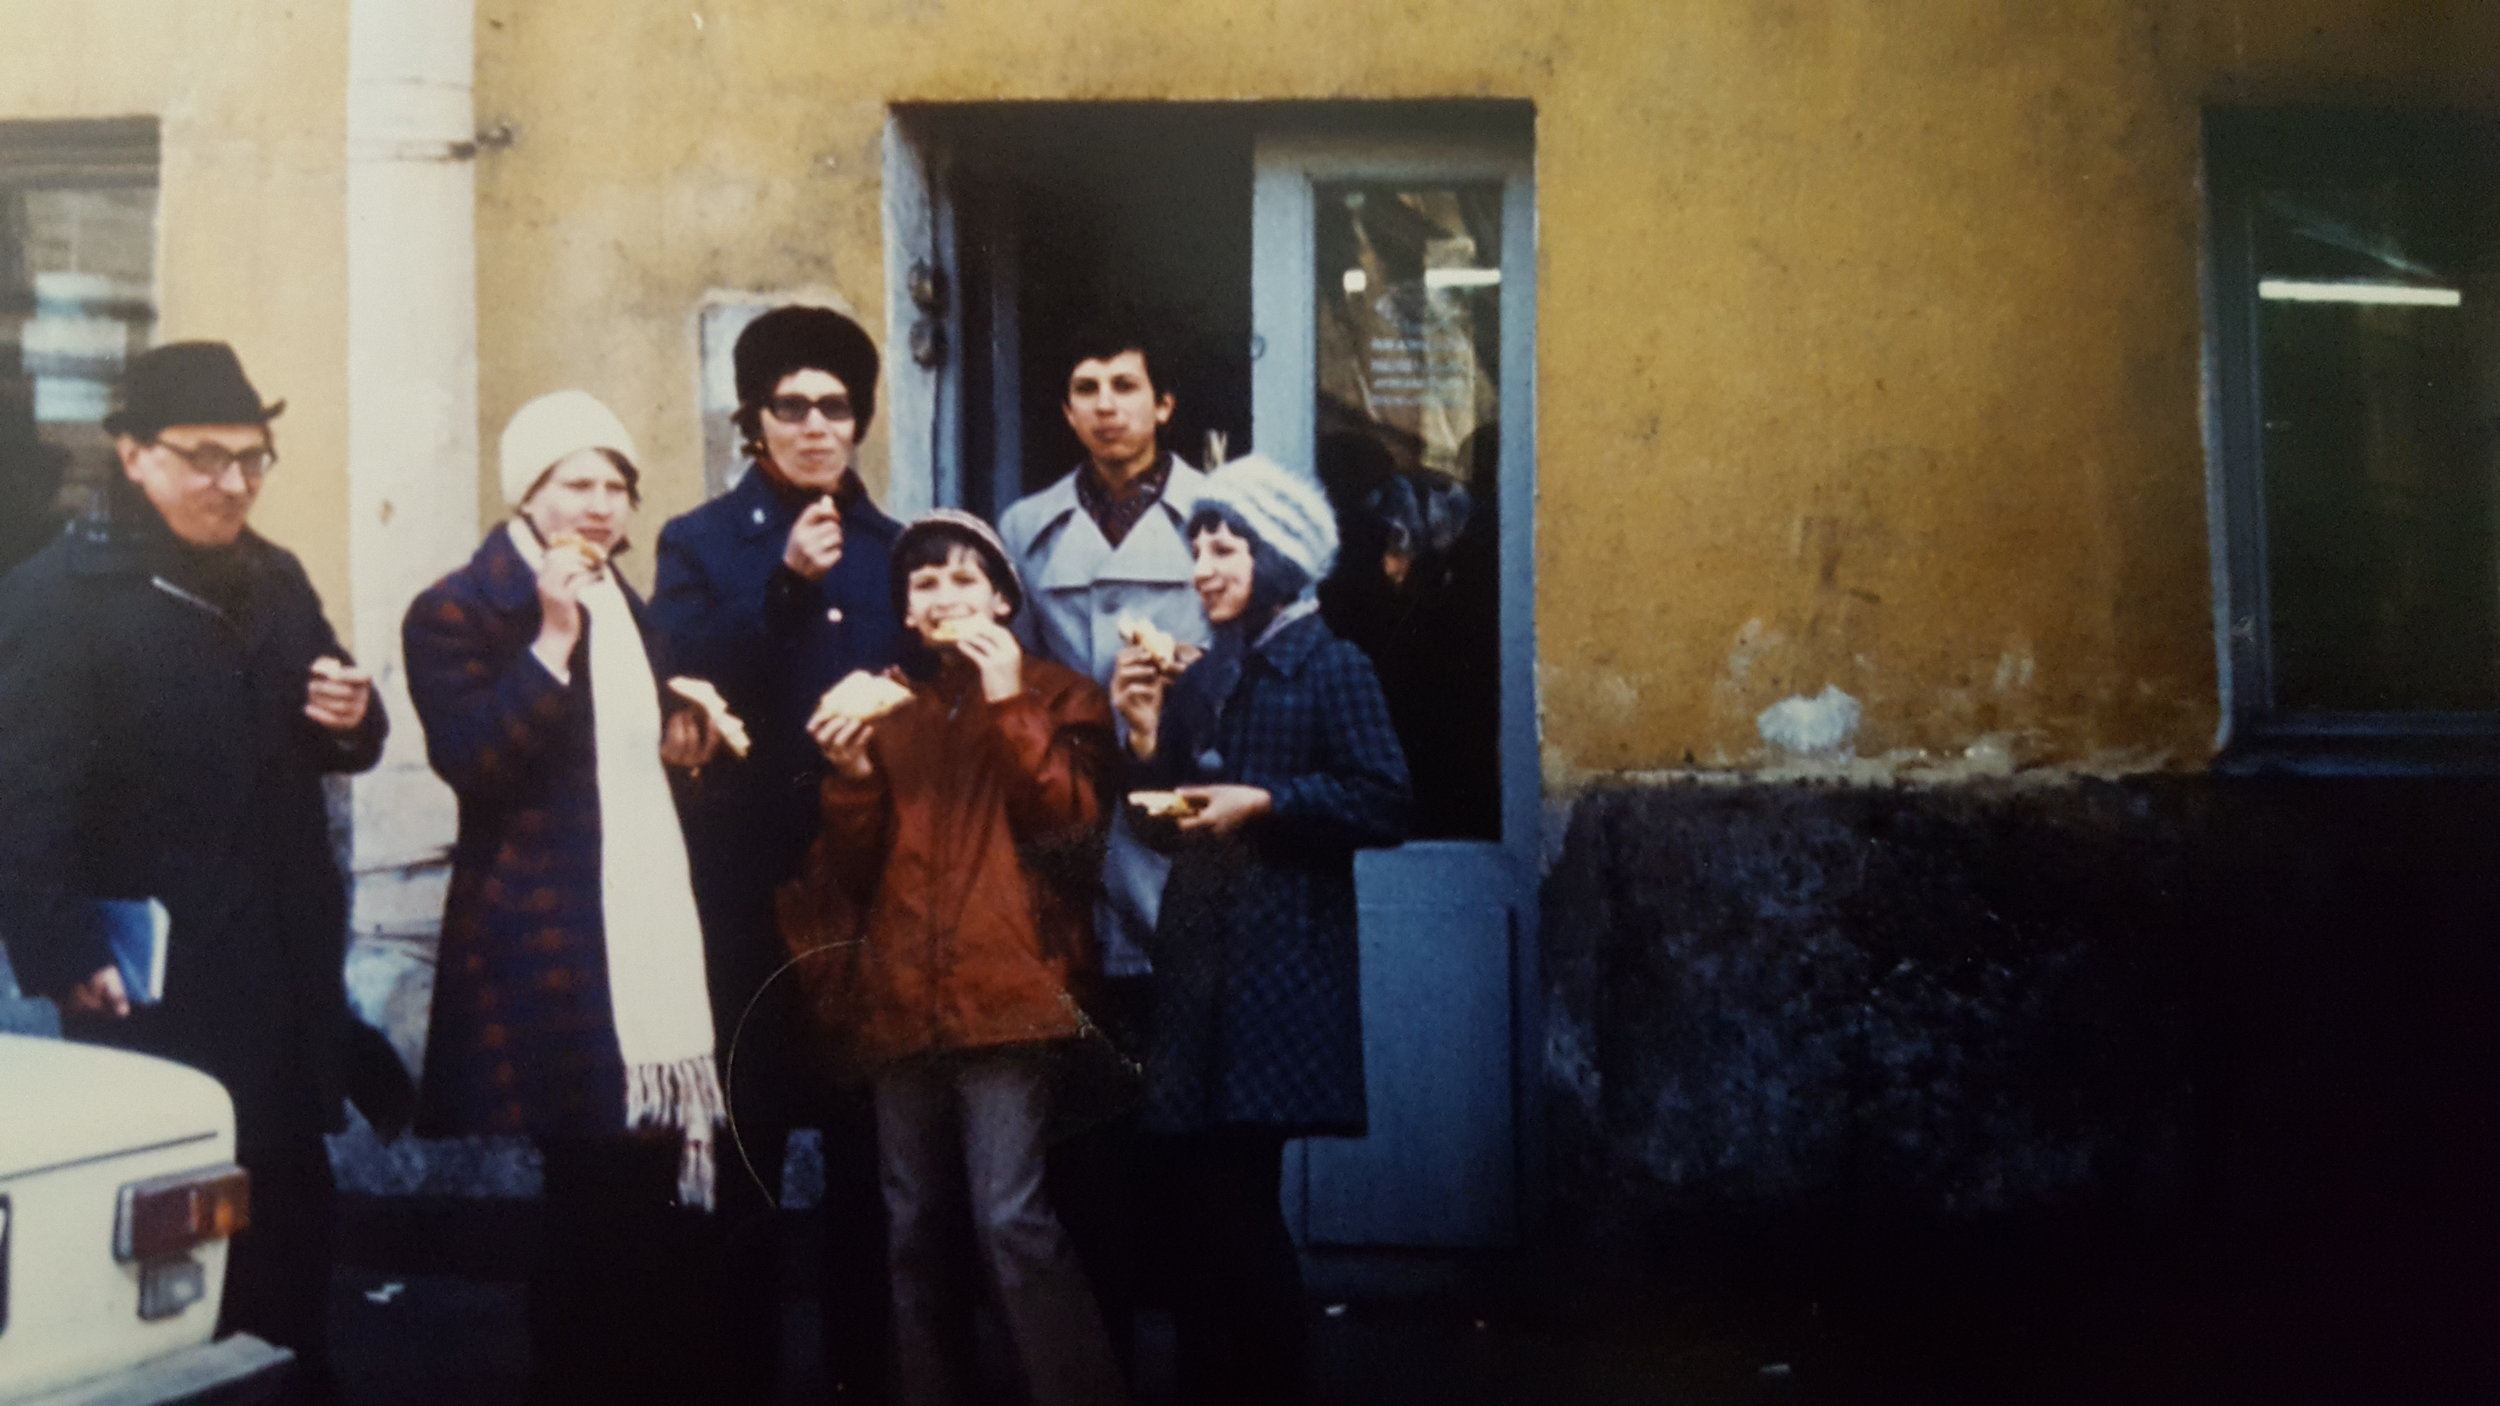 My mom (far right) with her brother Oleg (behind her) and her aunt Elya with her children Anna and Dmitry before they immigrated to the USA. Note the random photo bomber!!